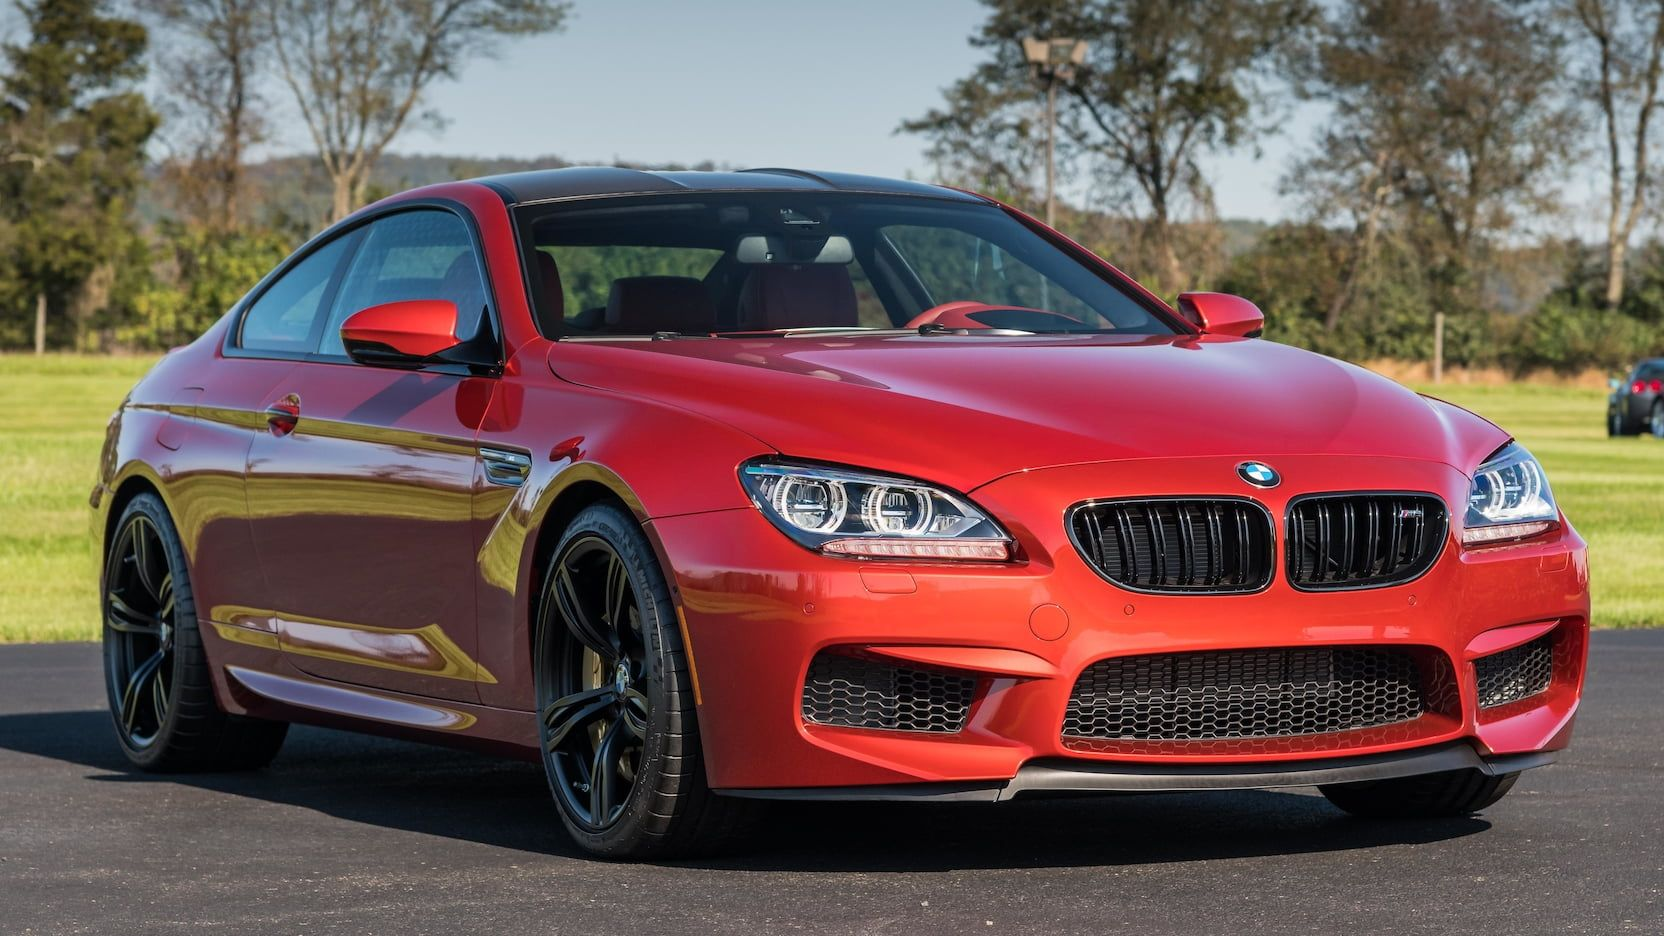 2014 Bmw M6 Coupe Presented As Lot S116 At Kissimmee Fl Bmw M6